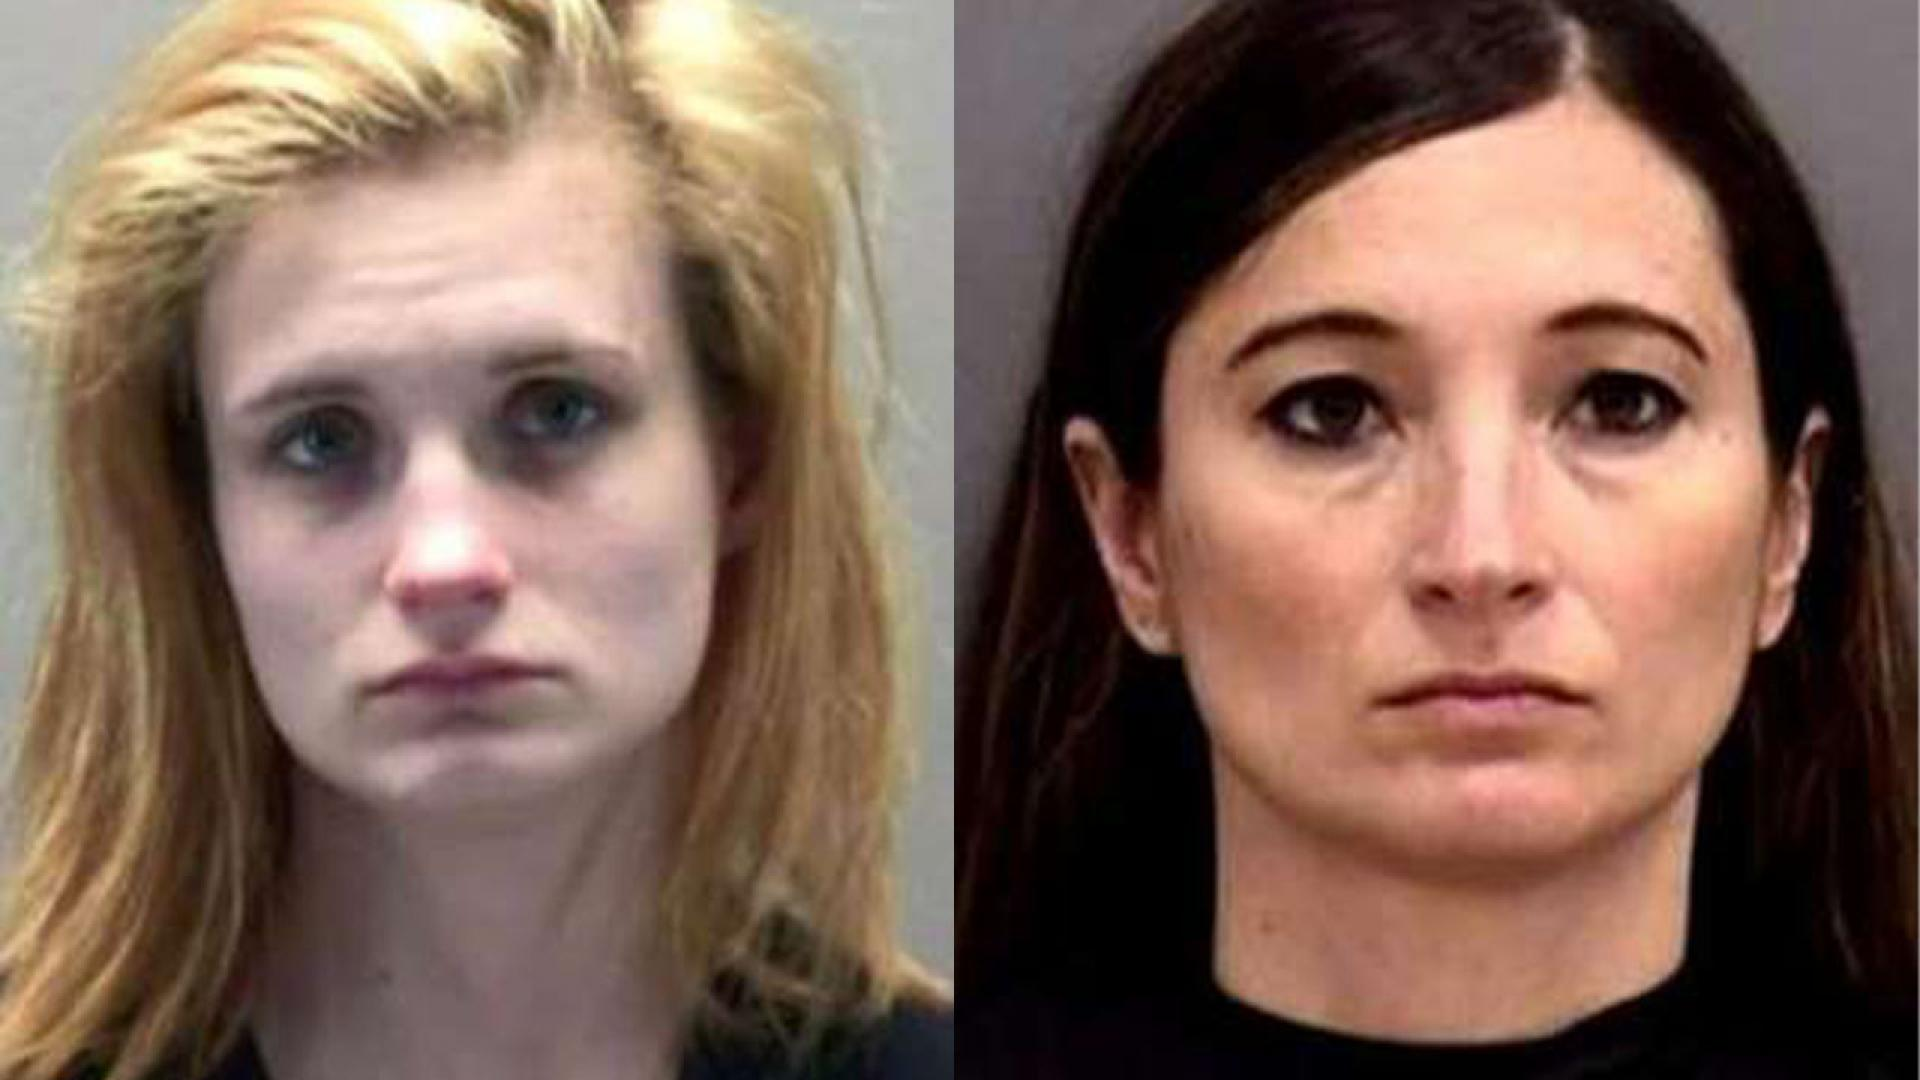 (r-l) Heidi Marie Littlefield, 41, her daughter, Logan Marie Runyon, 22 charged in murder-for-hire plot.